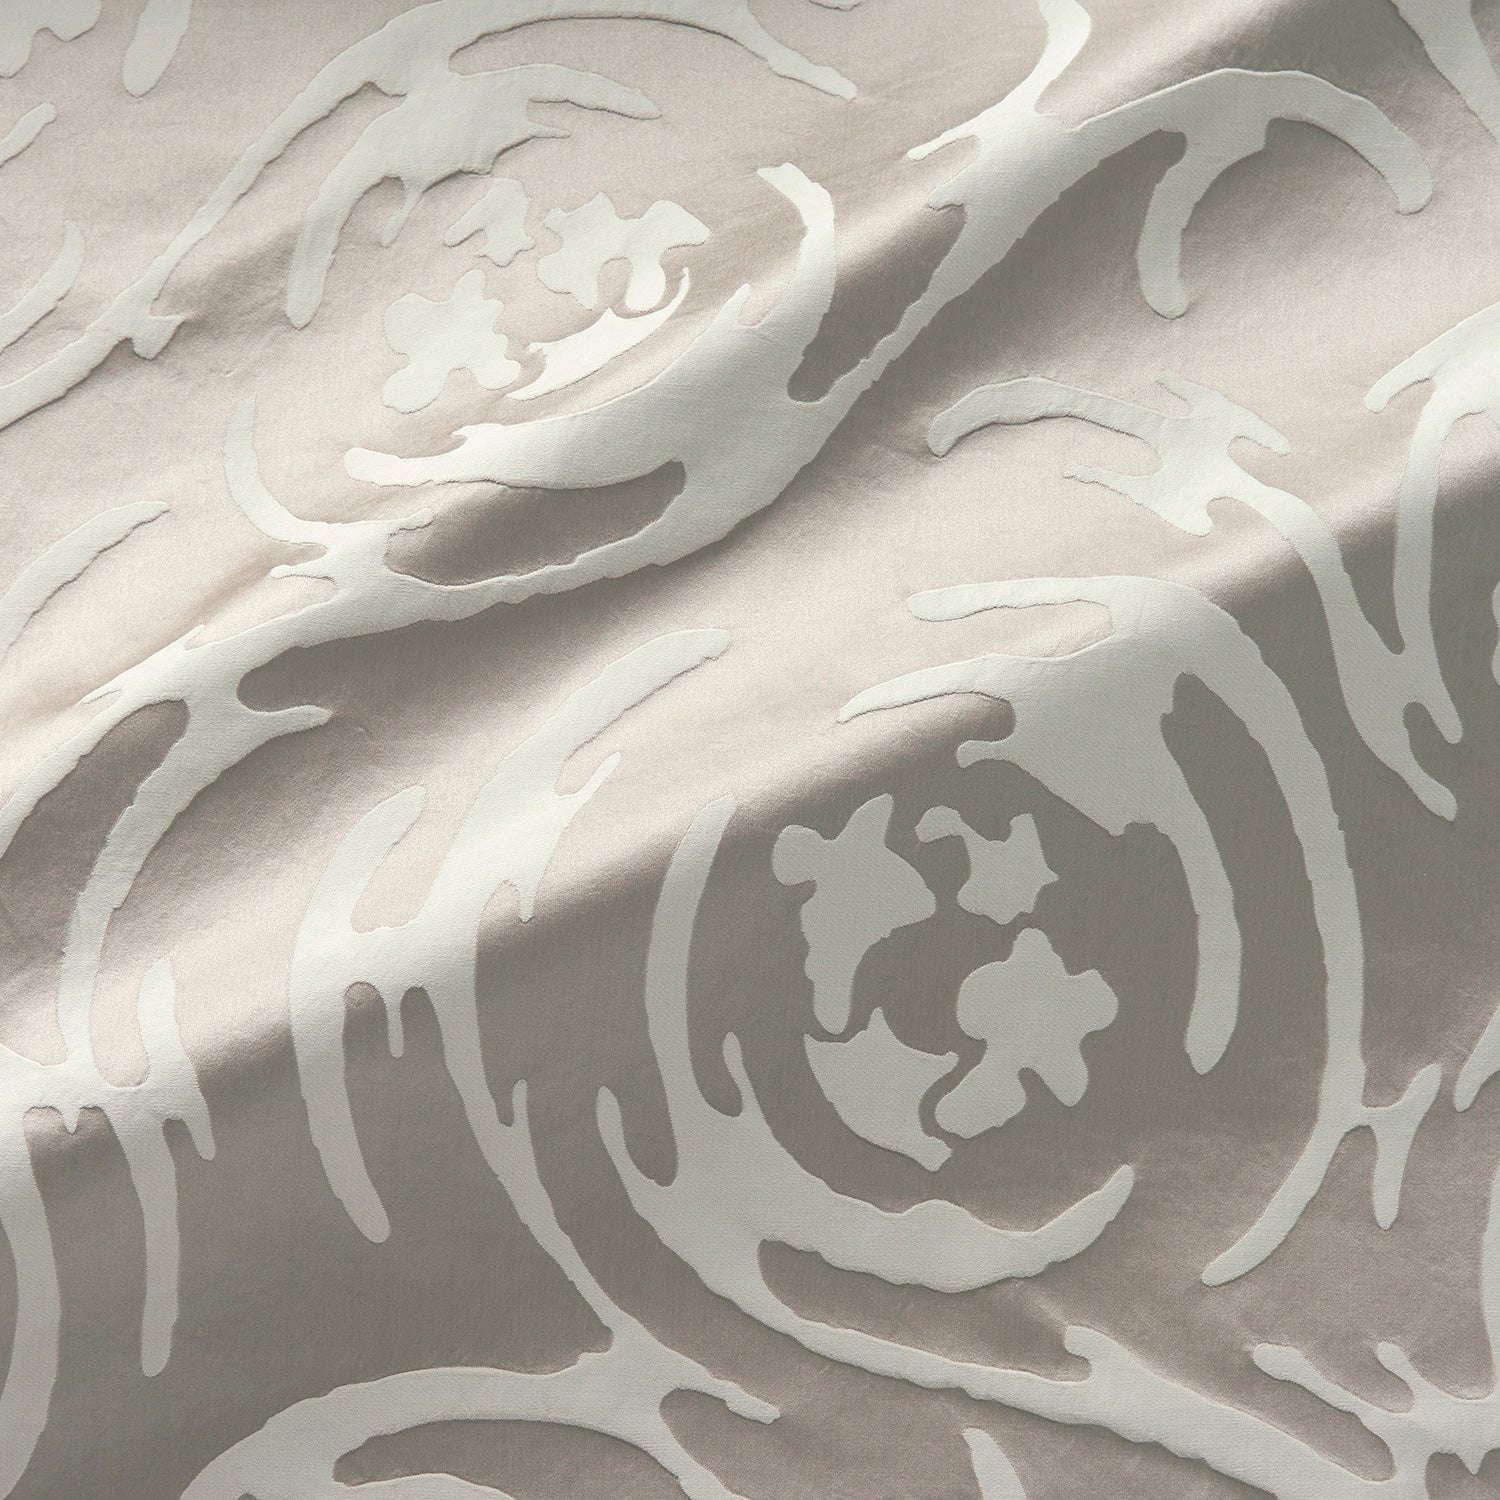 Fabric swatch of a beautiful neutral coloured abstract swirl fabric suitable for curtains